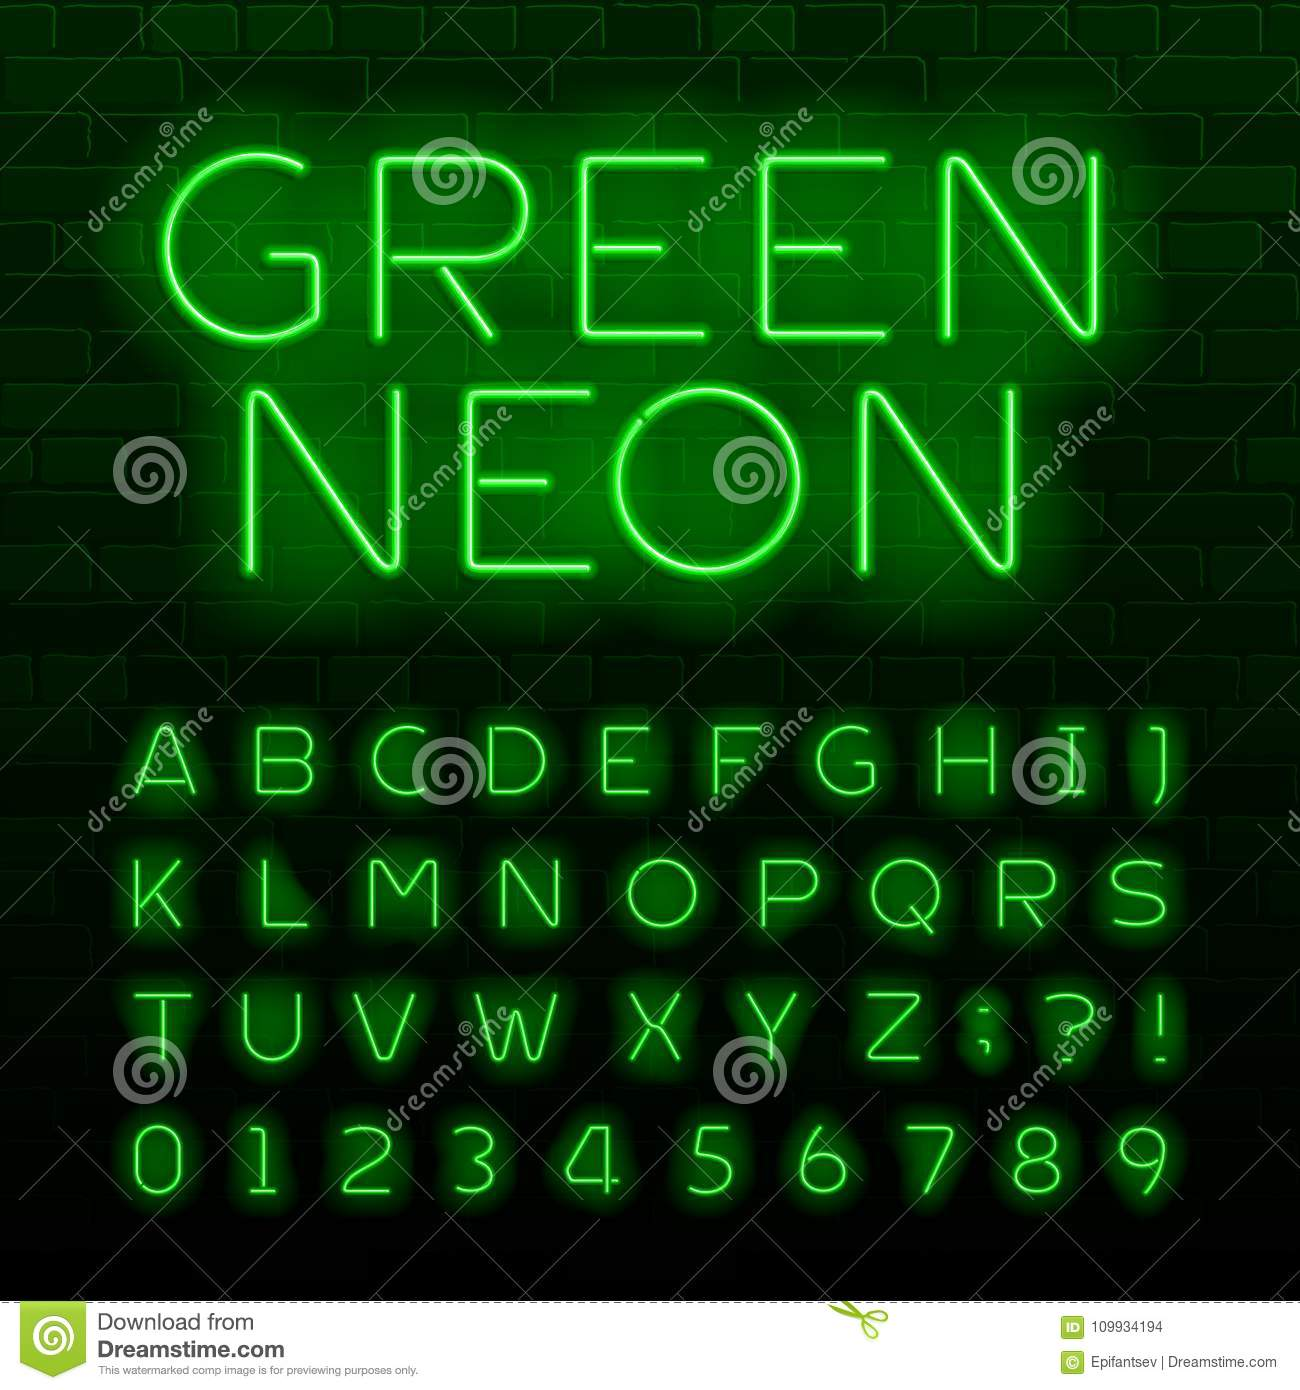 Green neon lamp alphabet font neon color shiny letters numbers green neon lamp alphabet font neon color shiny letters numbers and symbols brick wall background biocorpaavc Image collections